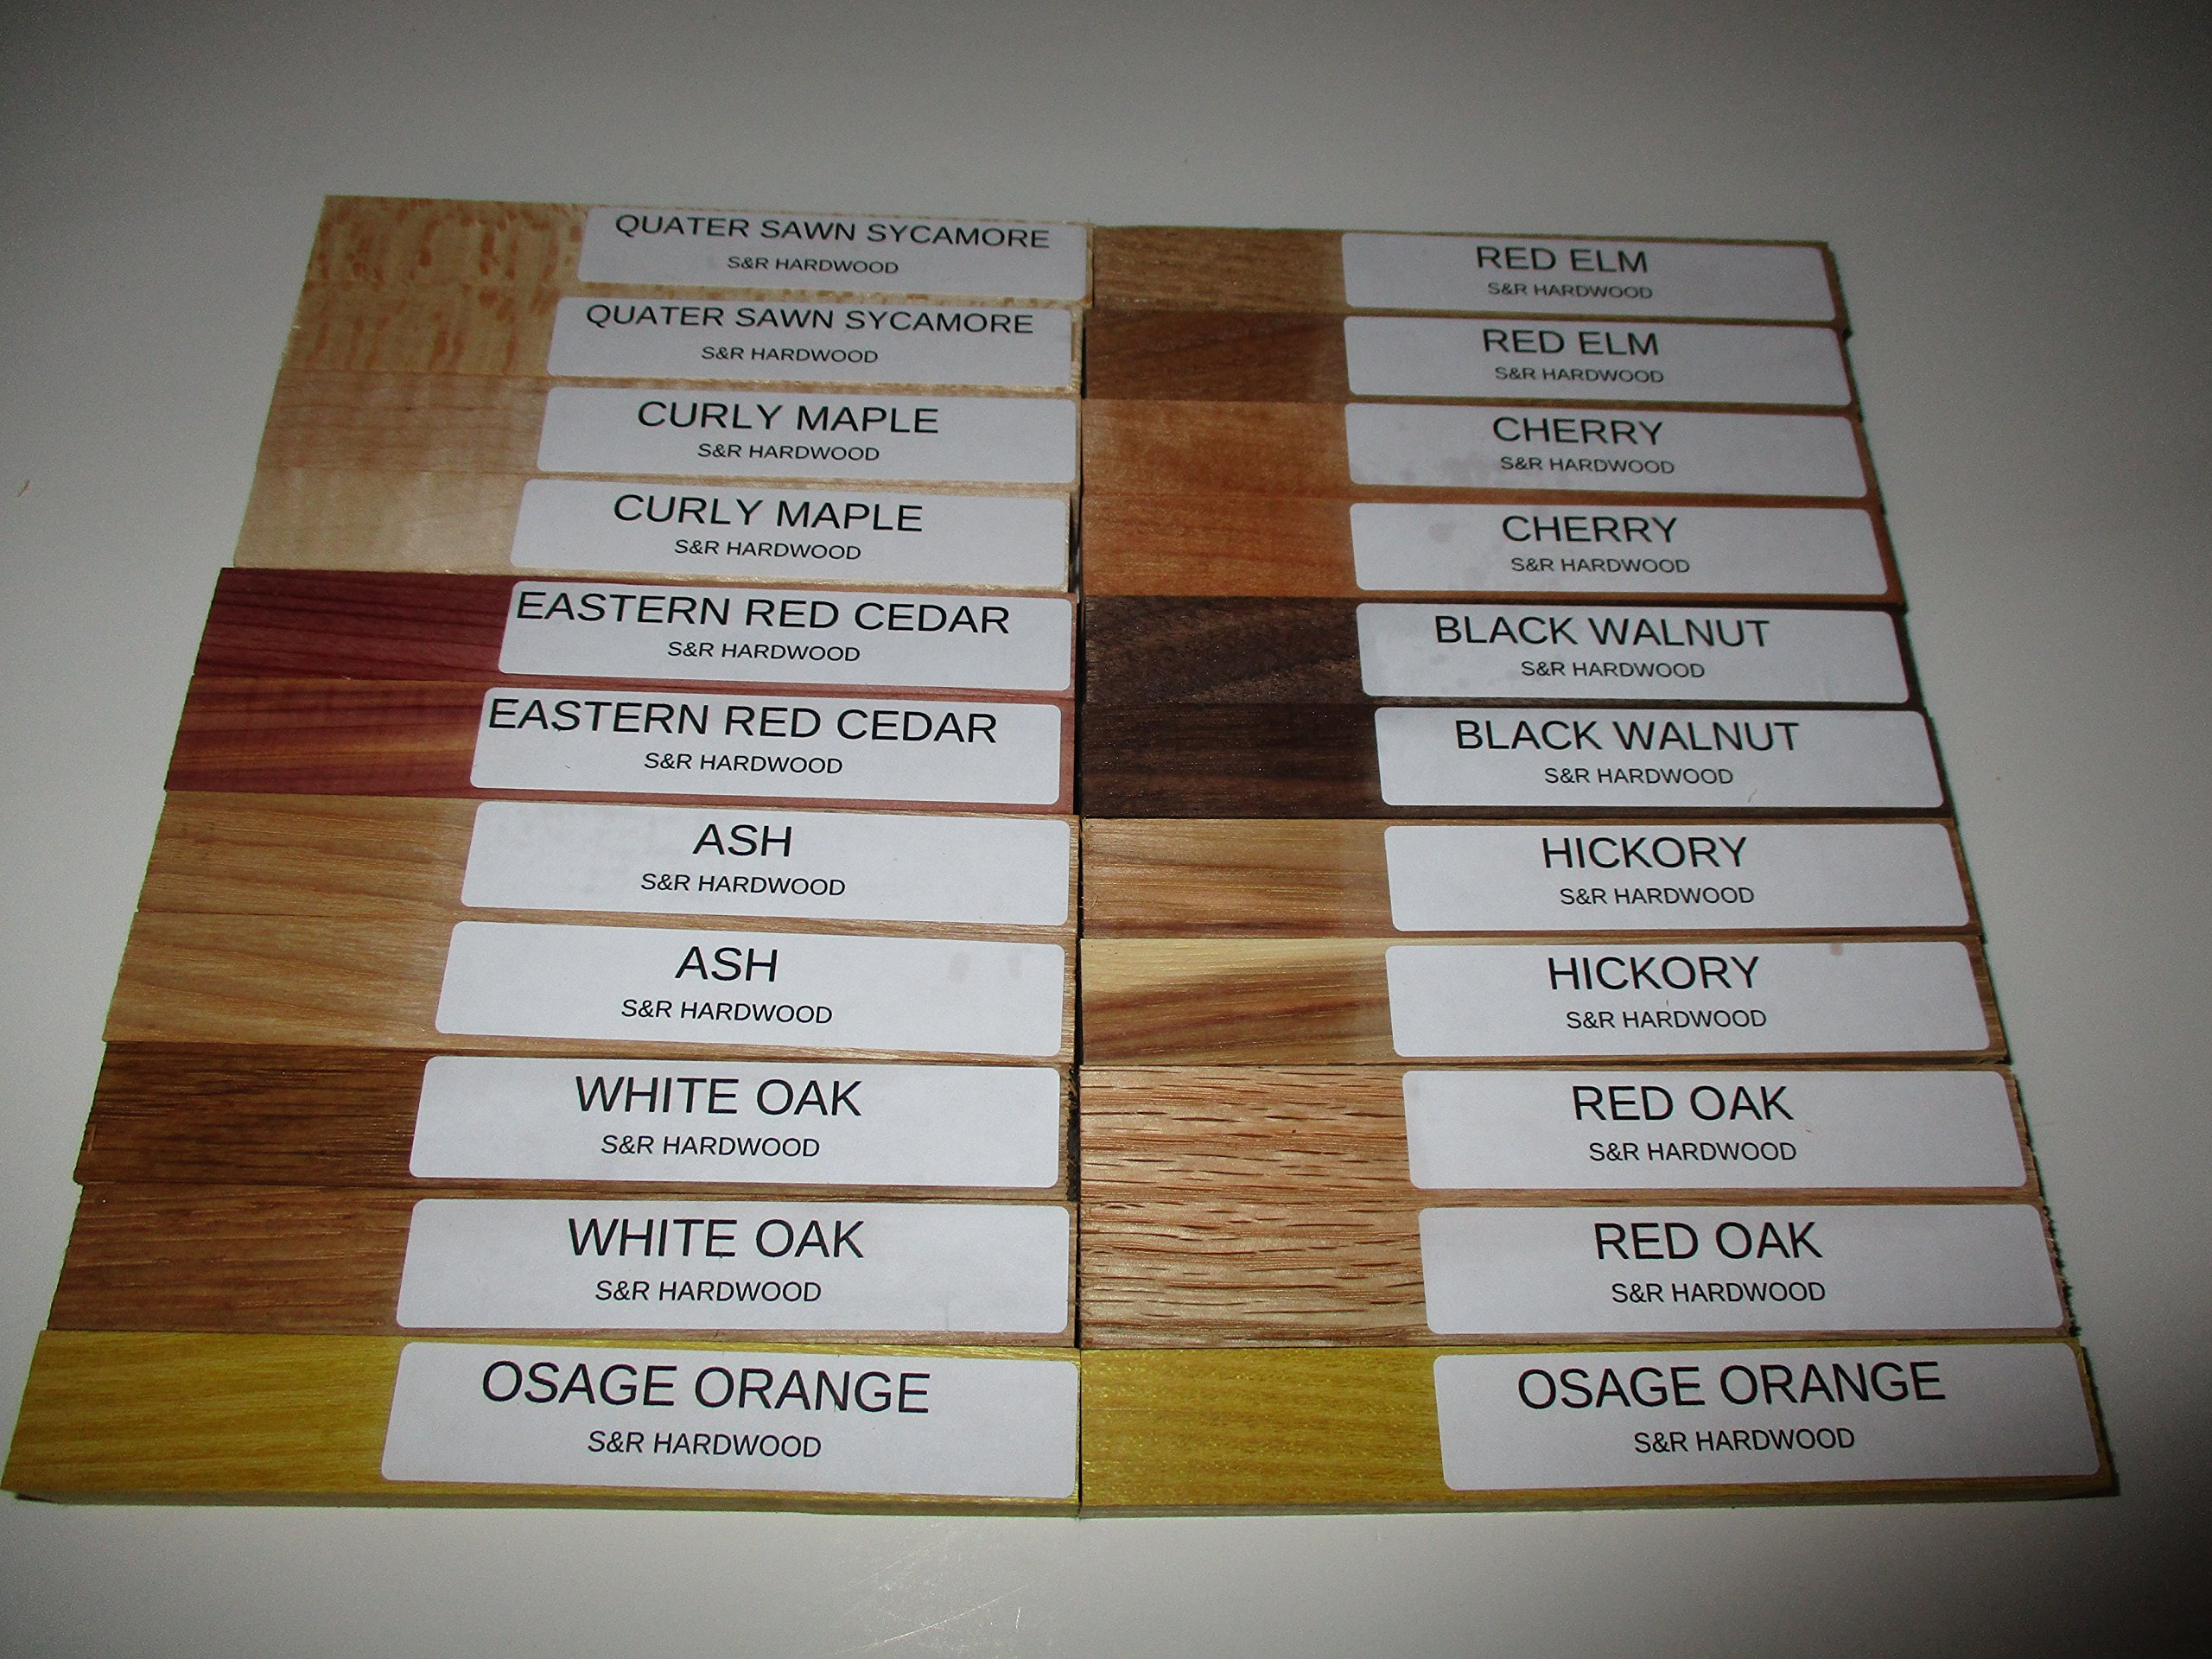 North American Pen Blank Pack (22) Piece Turning Set / 5.25 X .75X .75 / OSAGE ORANGE/CURLY MAPLE/QUARTER SAWN SYCAMORE/RED & WHITE OAK/CHERRY / WALNUT/HICKORY/ CEDAR/ASH / ELM/ 2 EACH